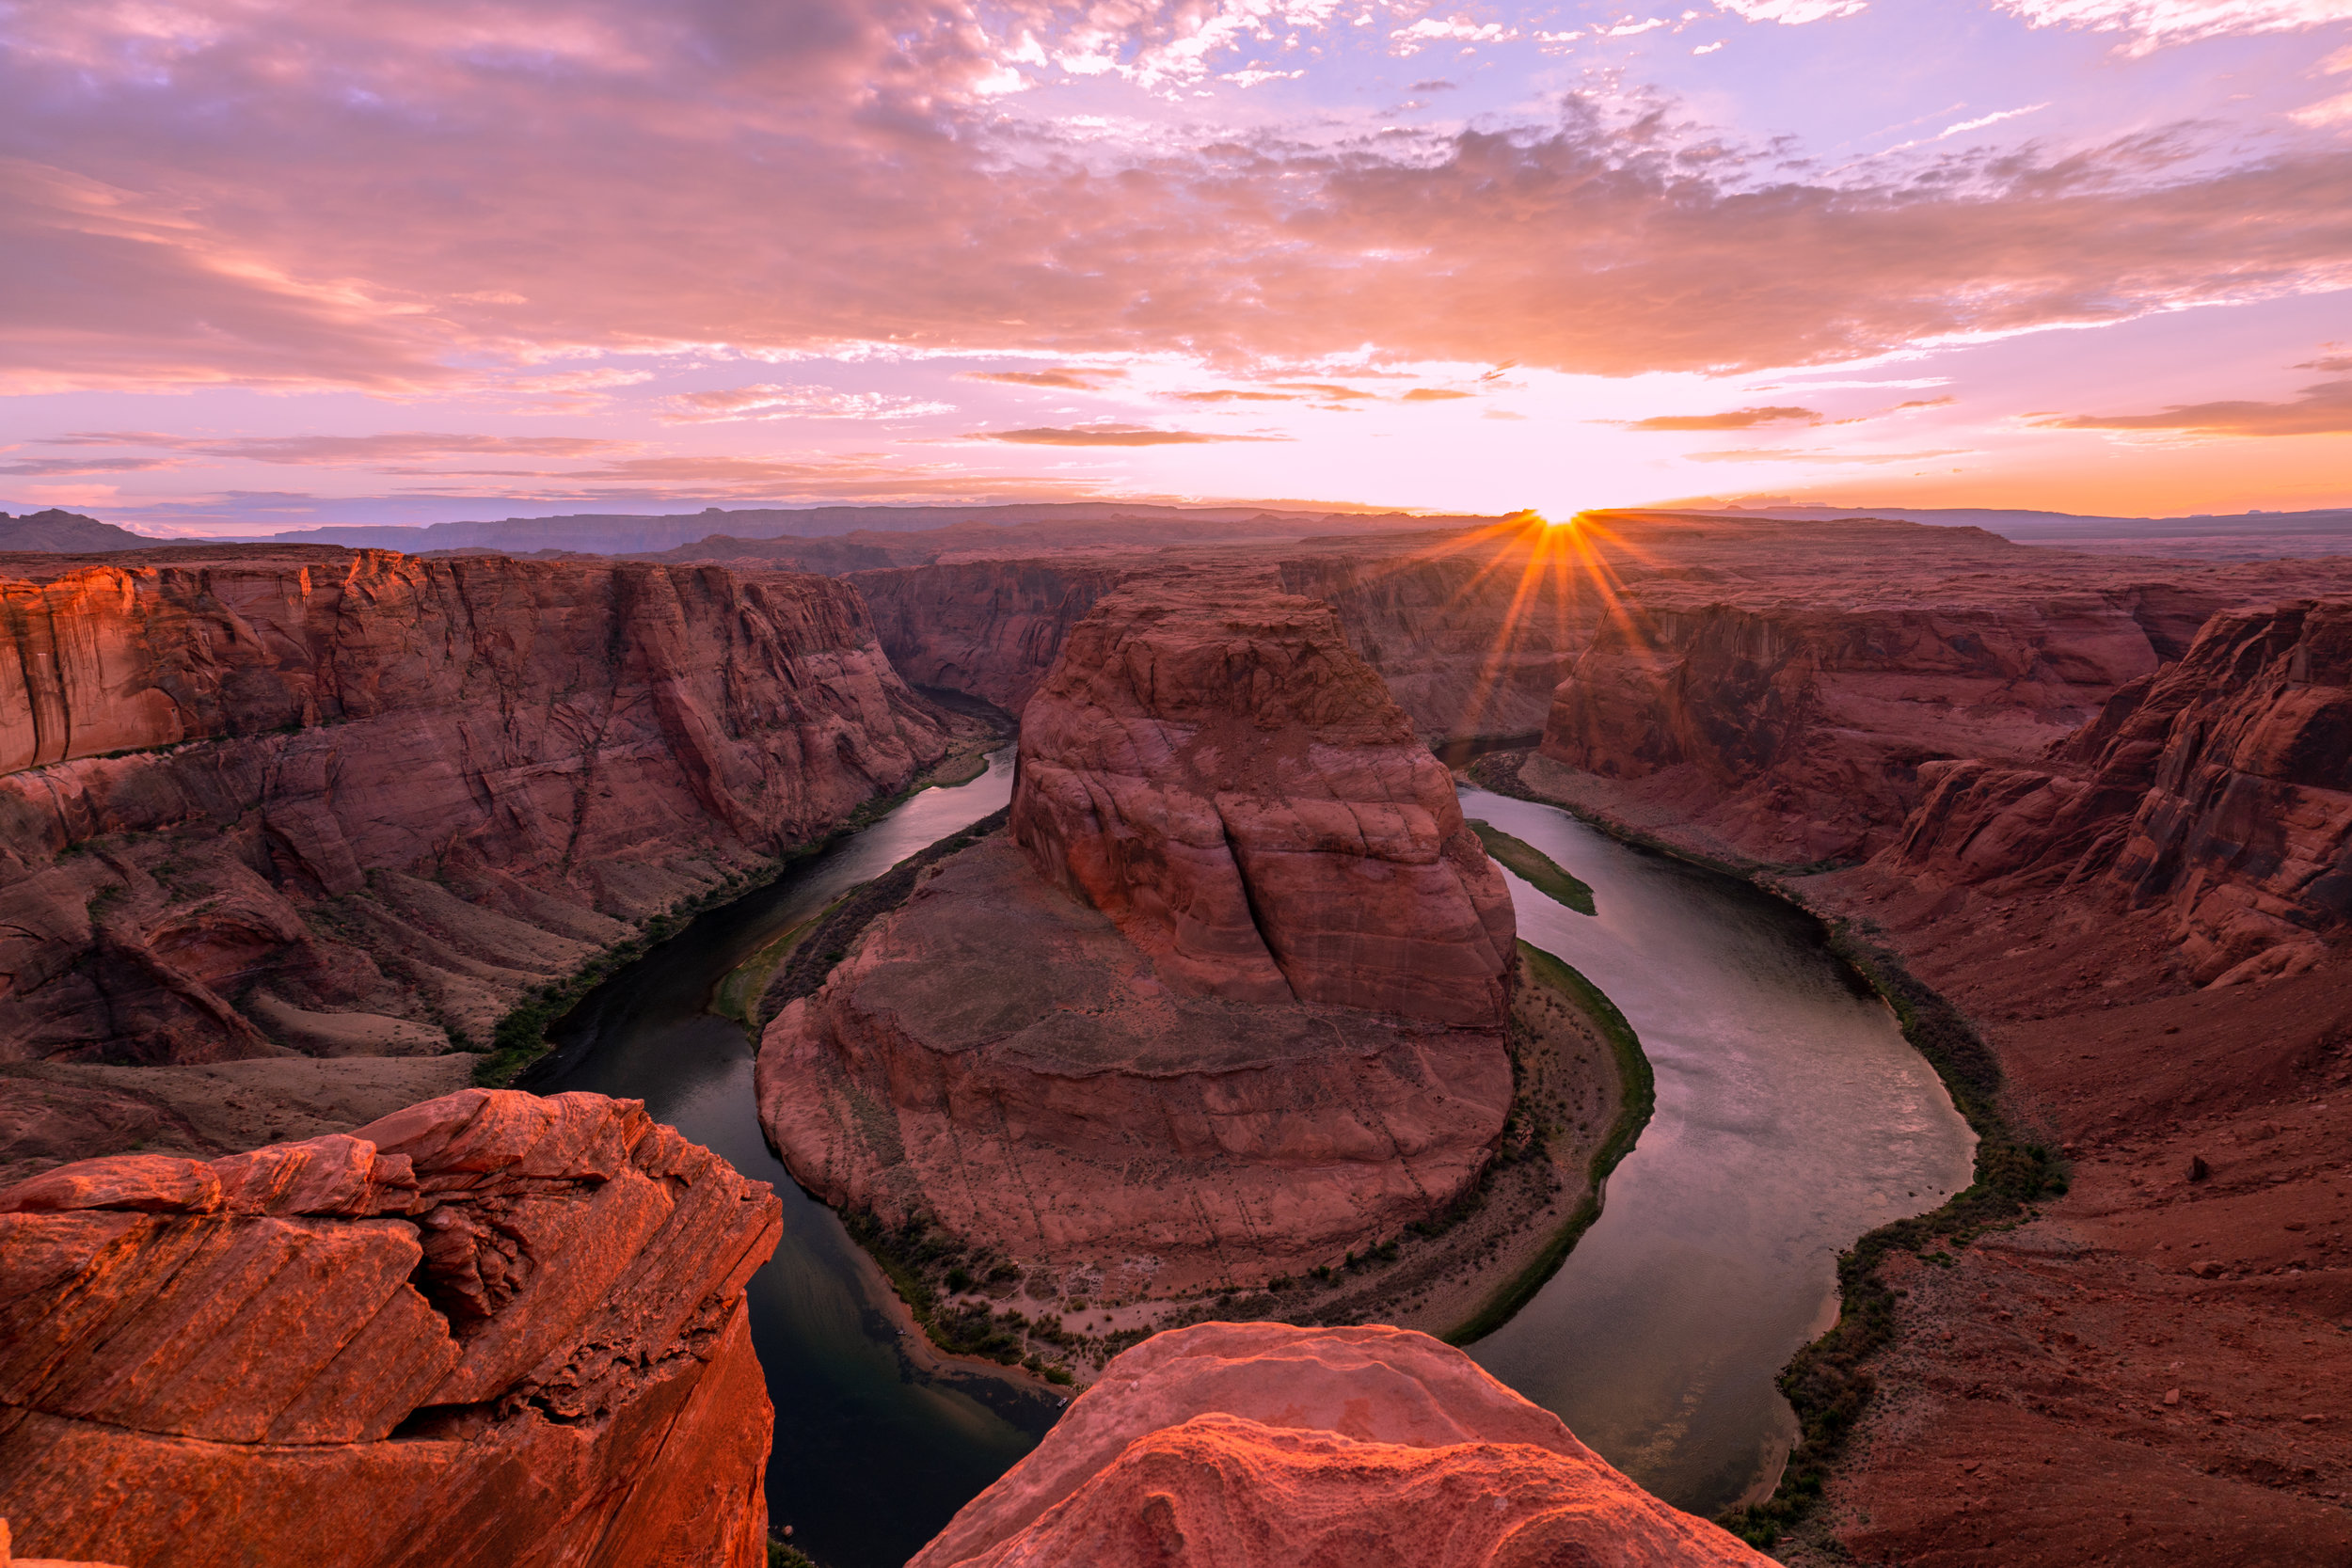 Horseshoe Bend's popularity increased exponentially through image sharing platforms like Instagram. It is located near Page, Arizona on Hopi, Diné, Southern Paiute and Ute ancestral land. Photo courtesy of Jose Magana